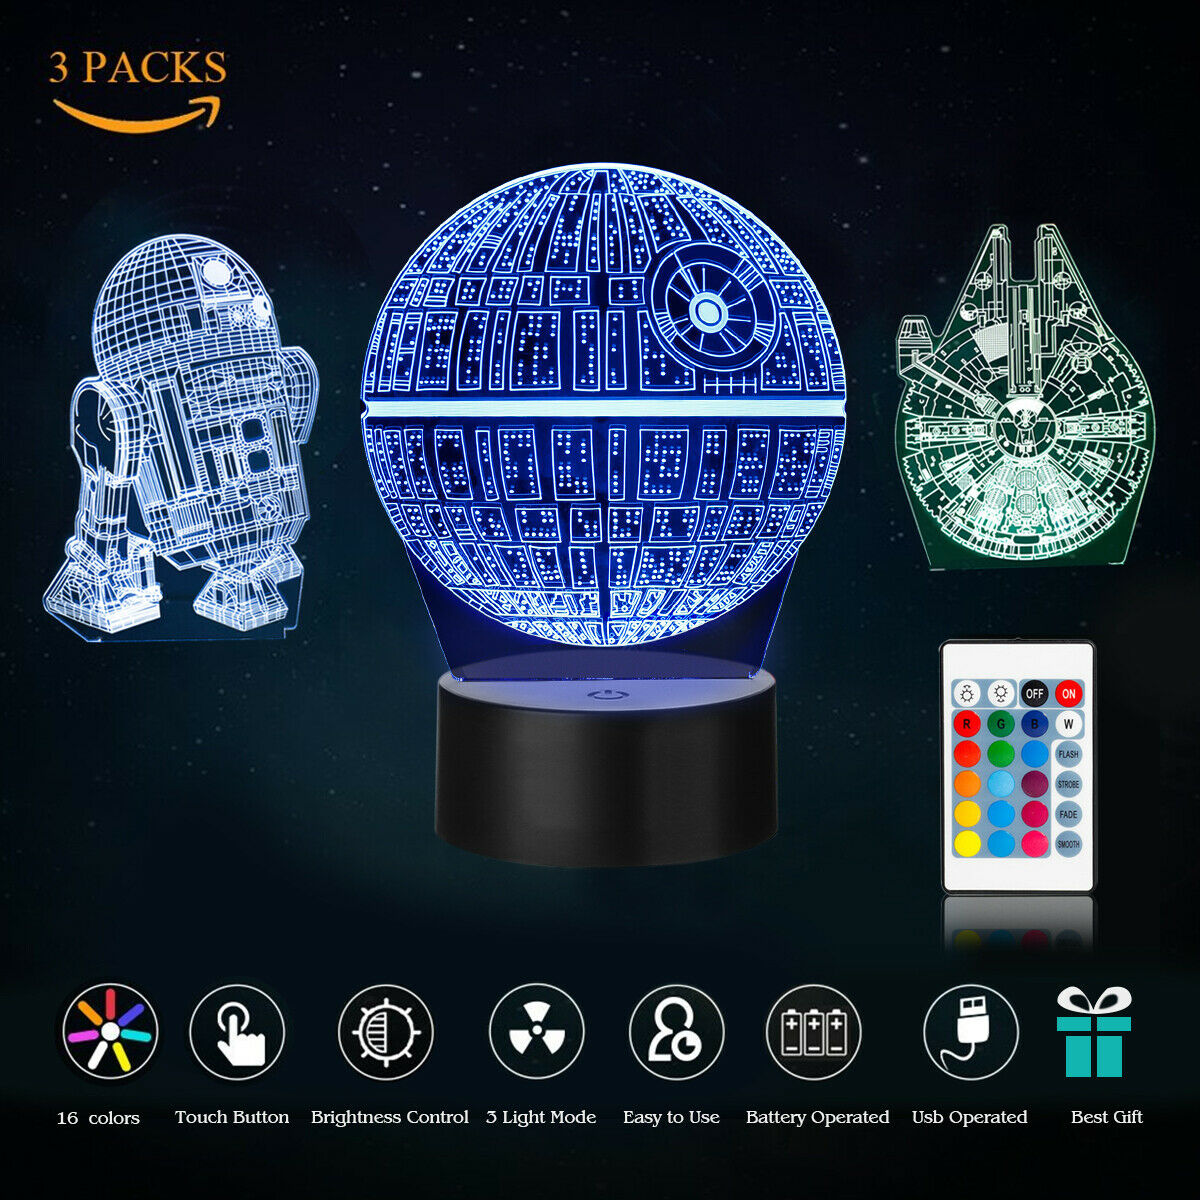 3 Packs Star Wars Death Star 3d Led Night Light 16 Colors